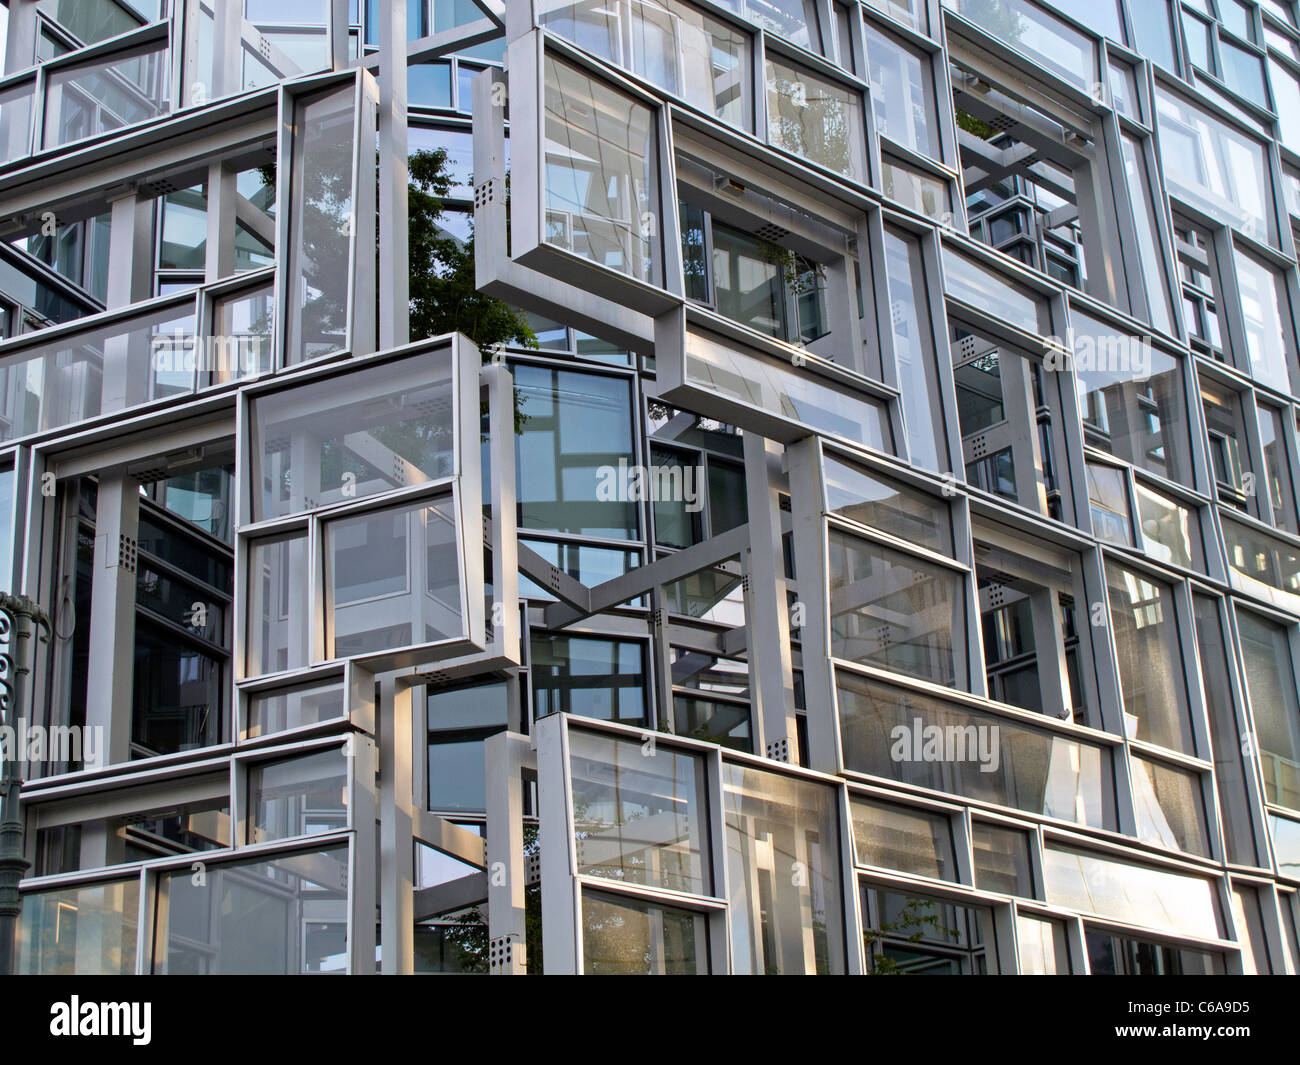 Jean nouvel apartment building at 100 eleventh avenue nyc